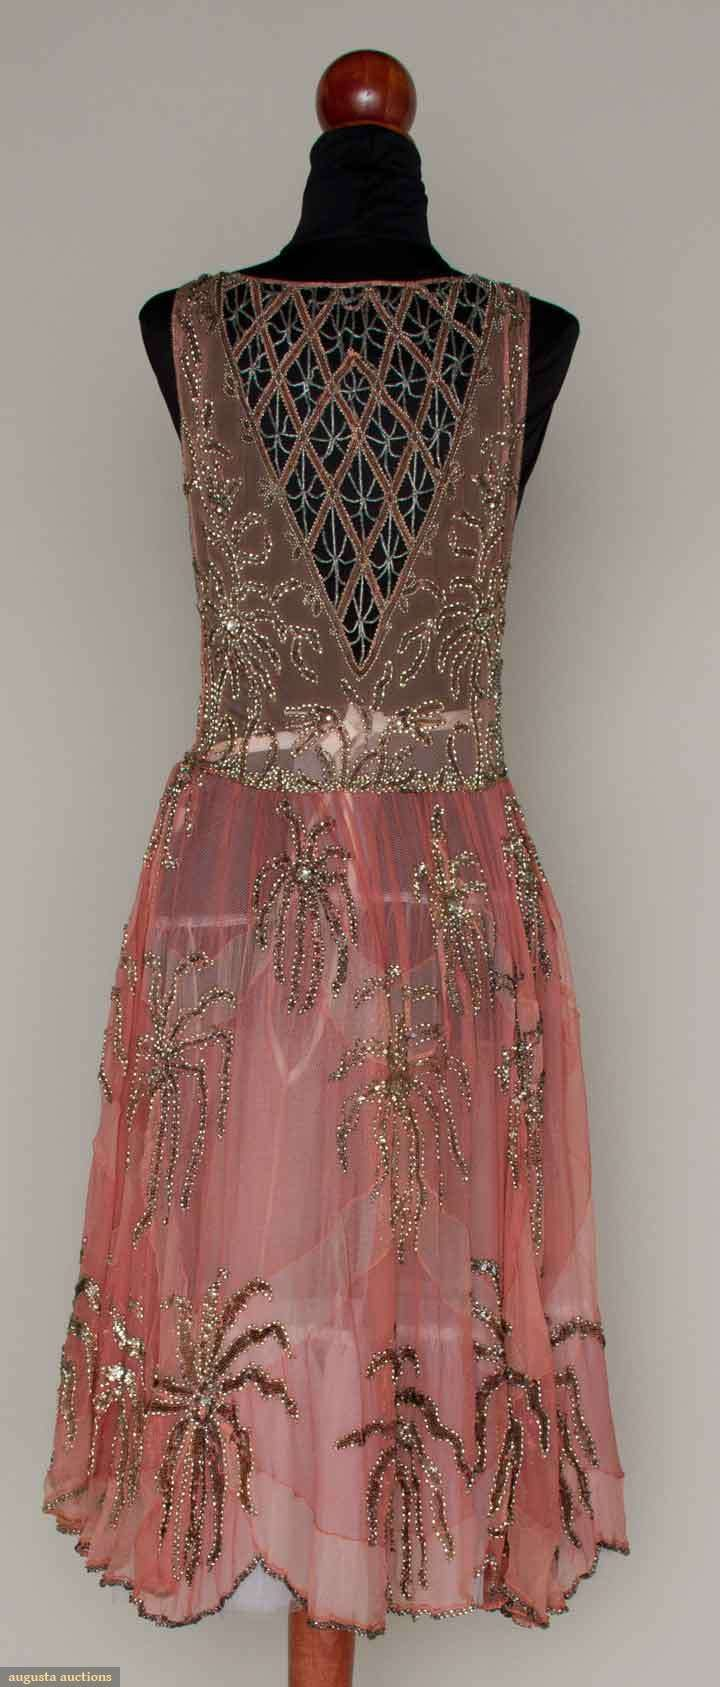 PINK & SILVER BEADED PARTY DRESS, MID 1920sPale pink chiffon w/ darker pink large fan shape inserts, silver glass, sequin & rhinestone multi-petal blossoms, beaded lattice inserts on F & B bodice, full skirt & scalloped hem. Back